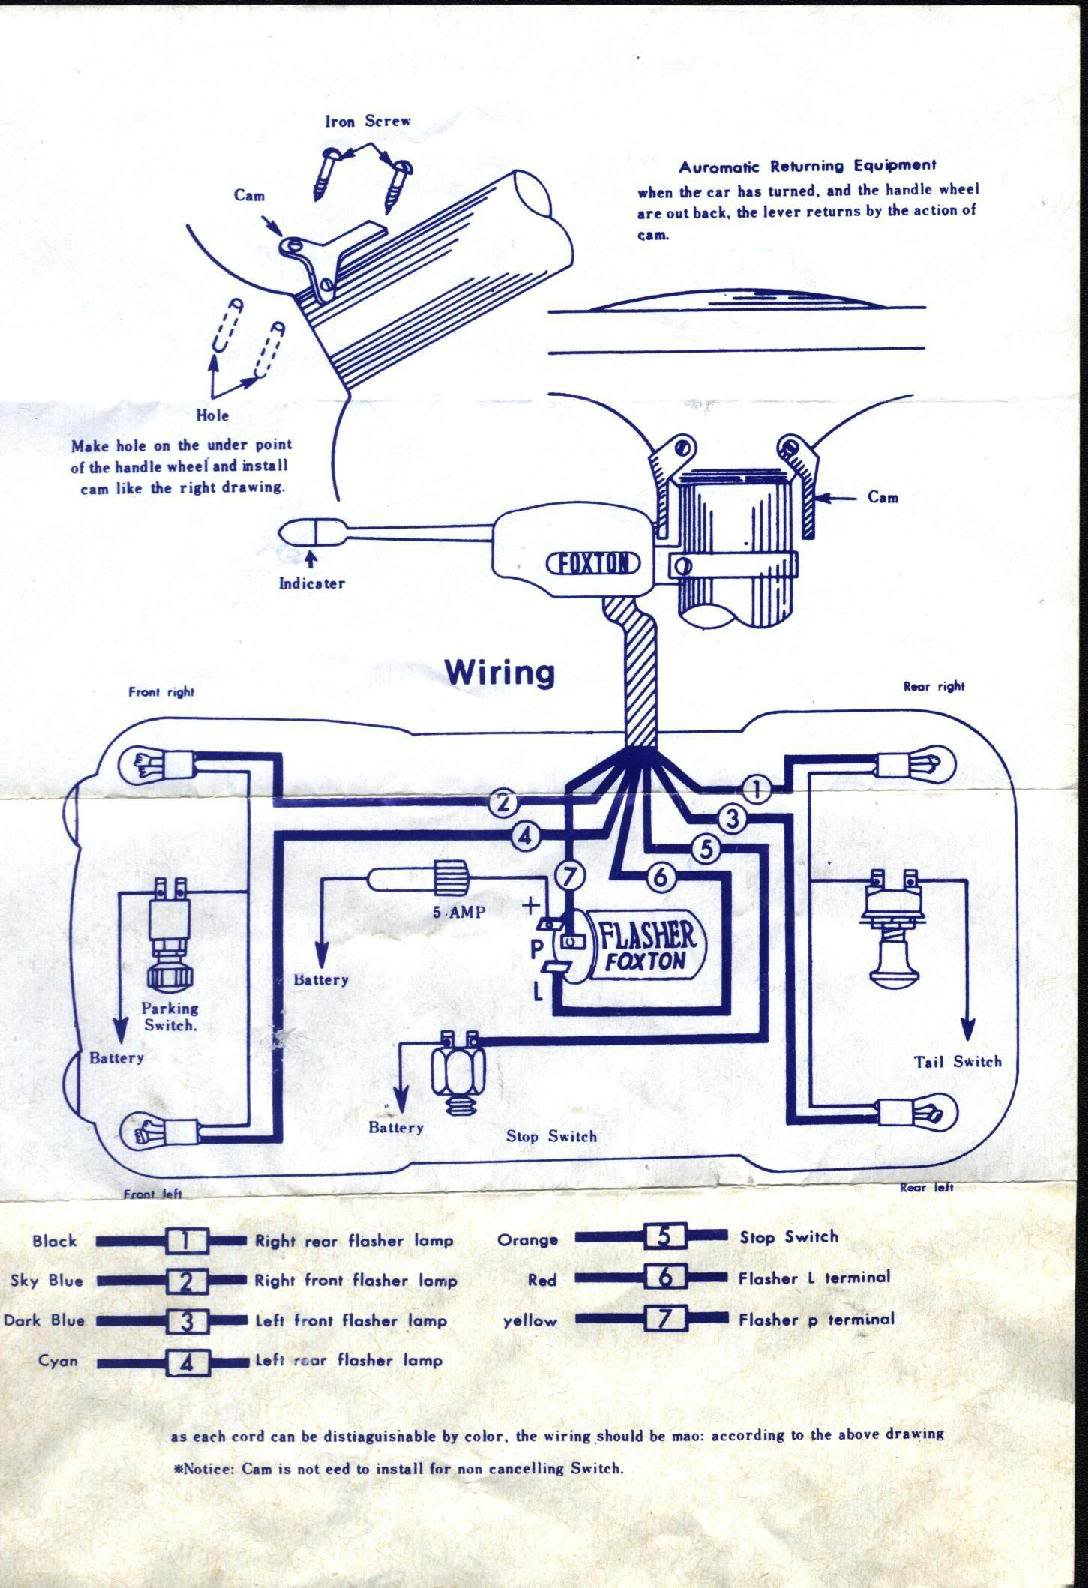 yet another turn signal wiring question the h a m b Chevy Truck Wiring Diagram at alyssarenee.co